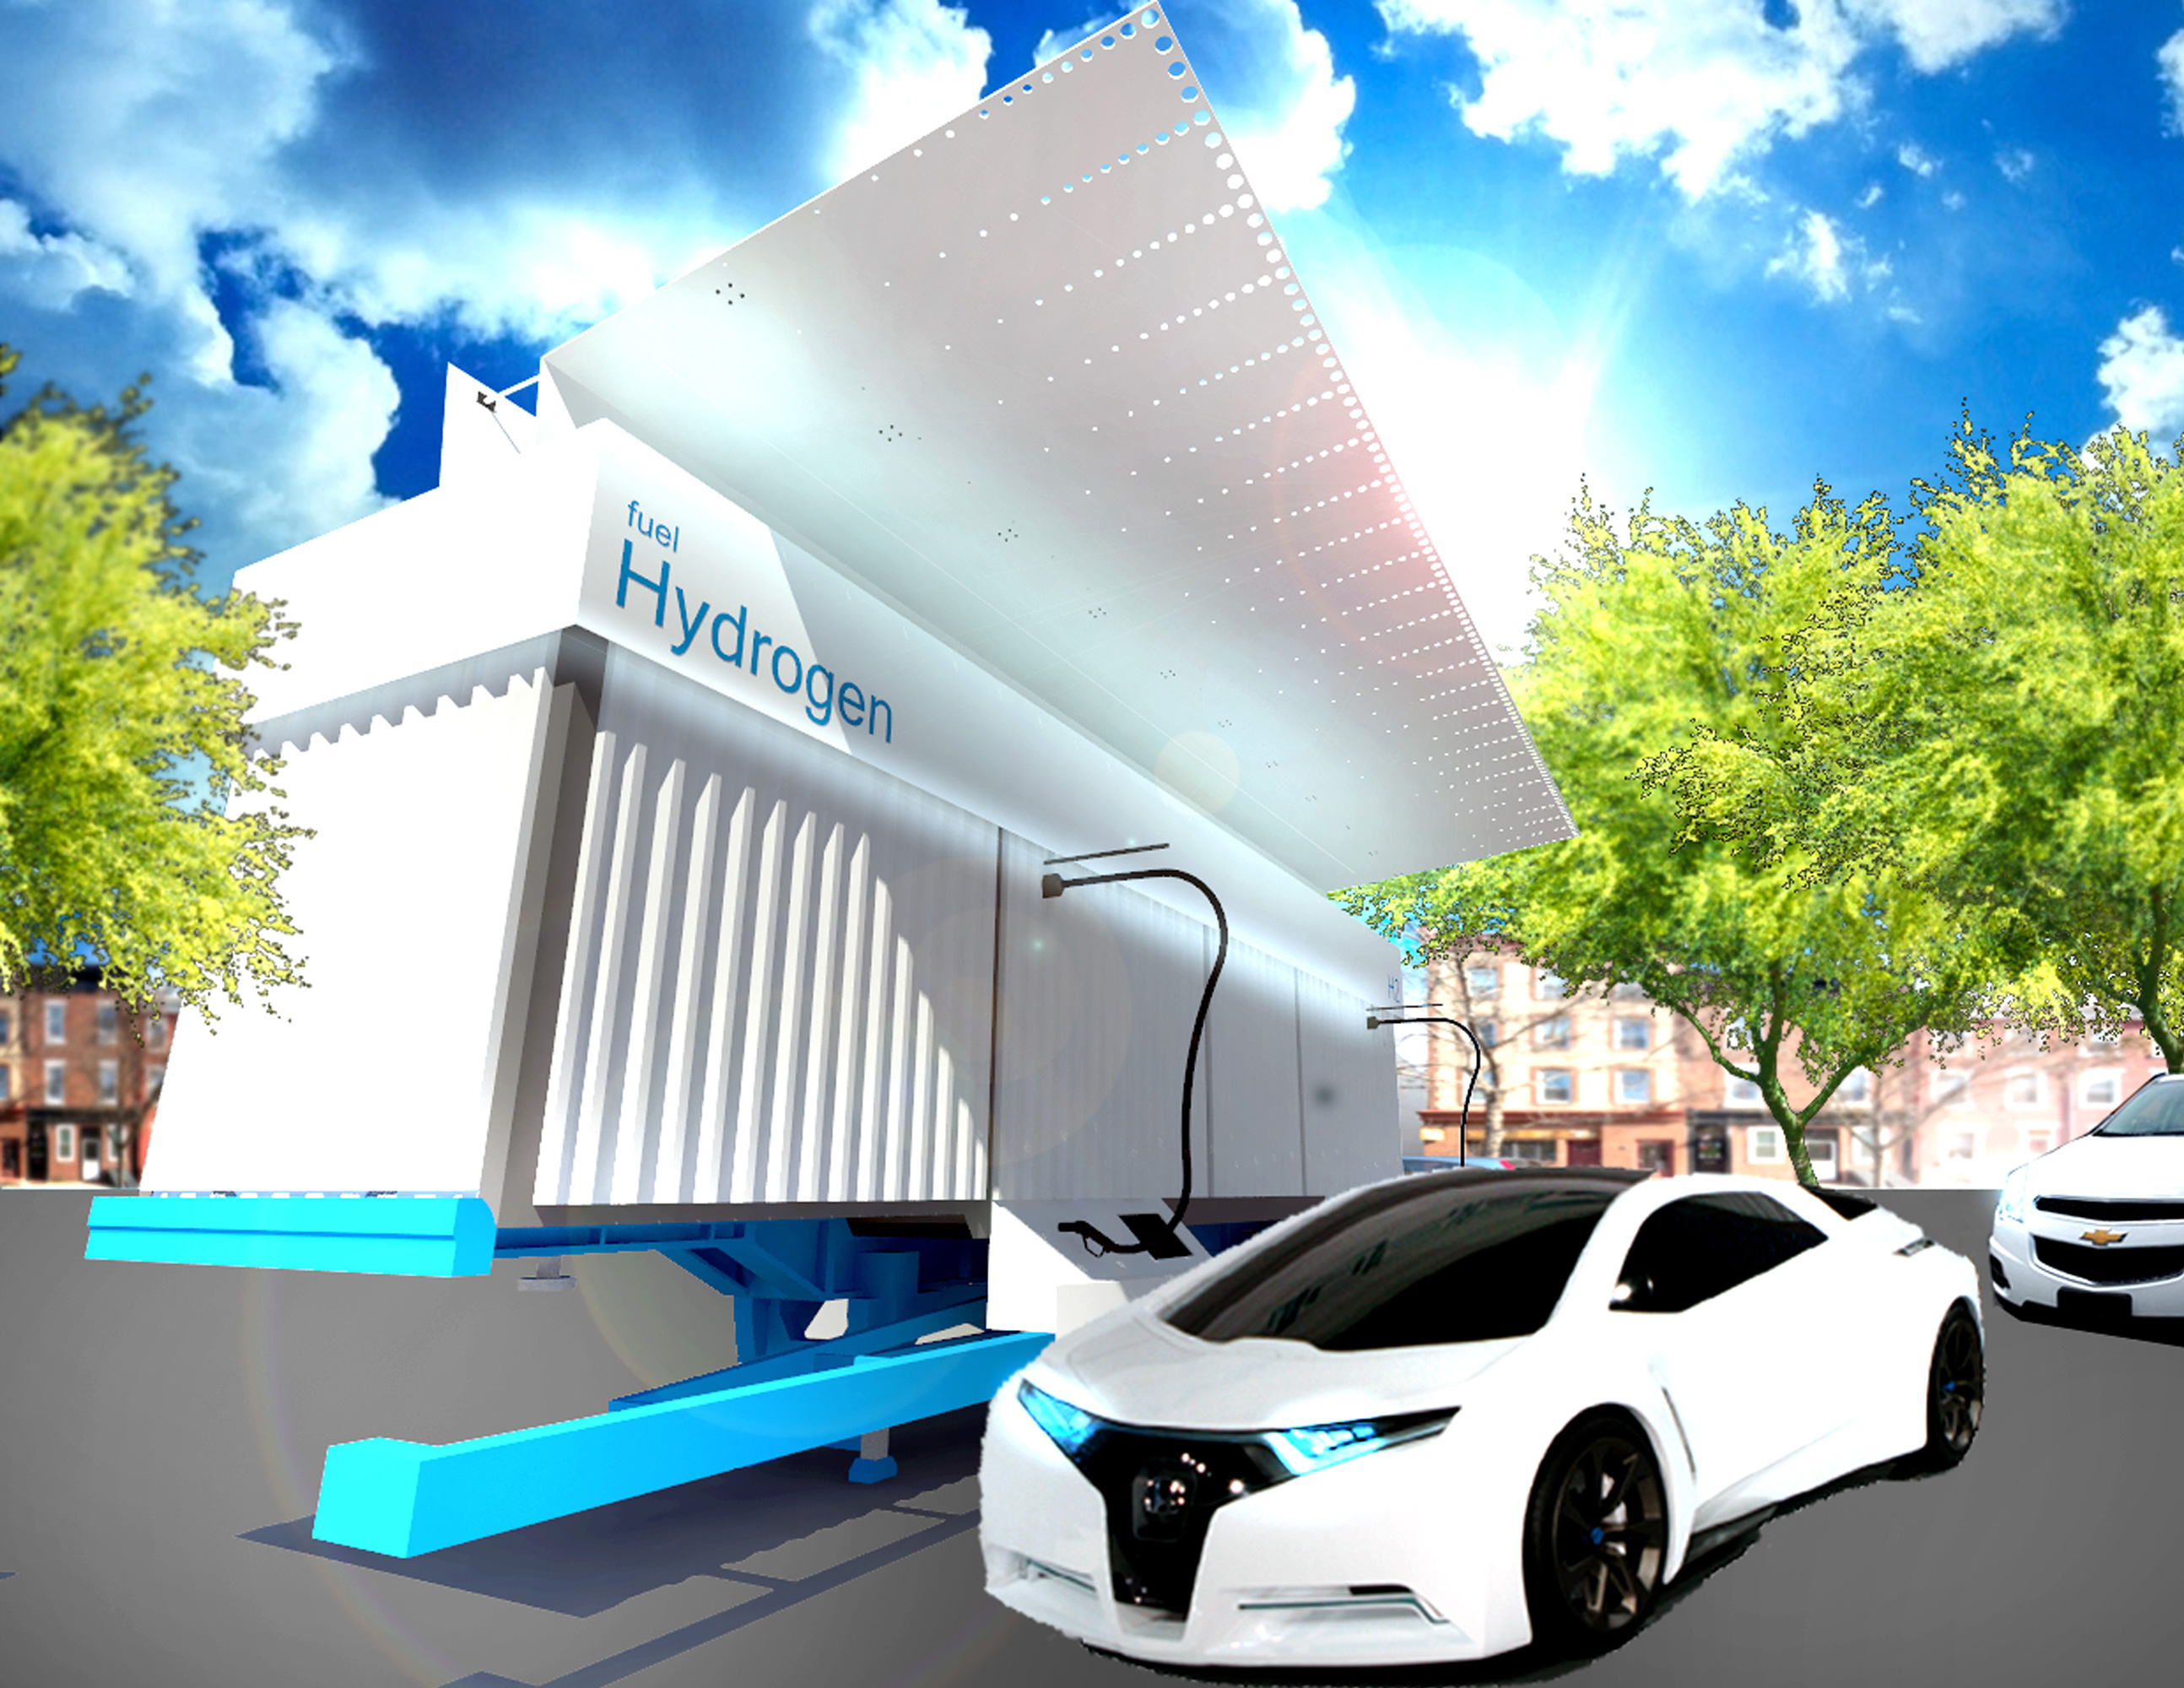 Ambitious Student Project Aims At Renewable Hydrogen For